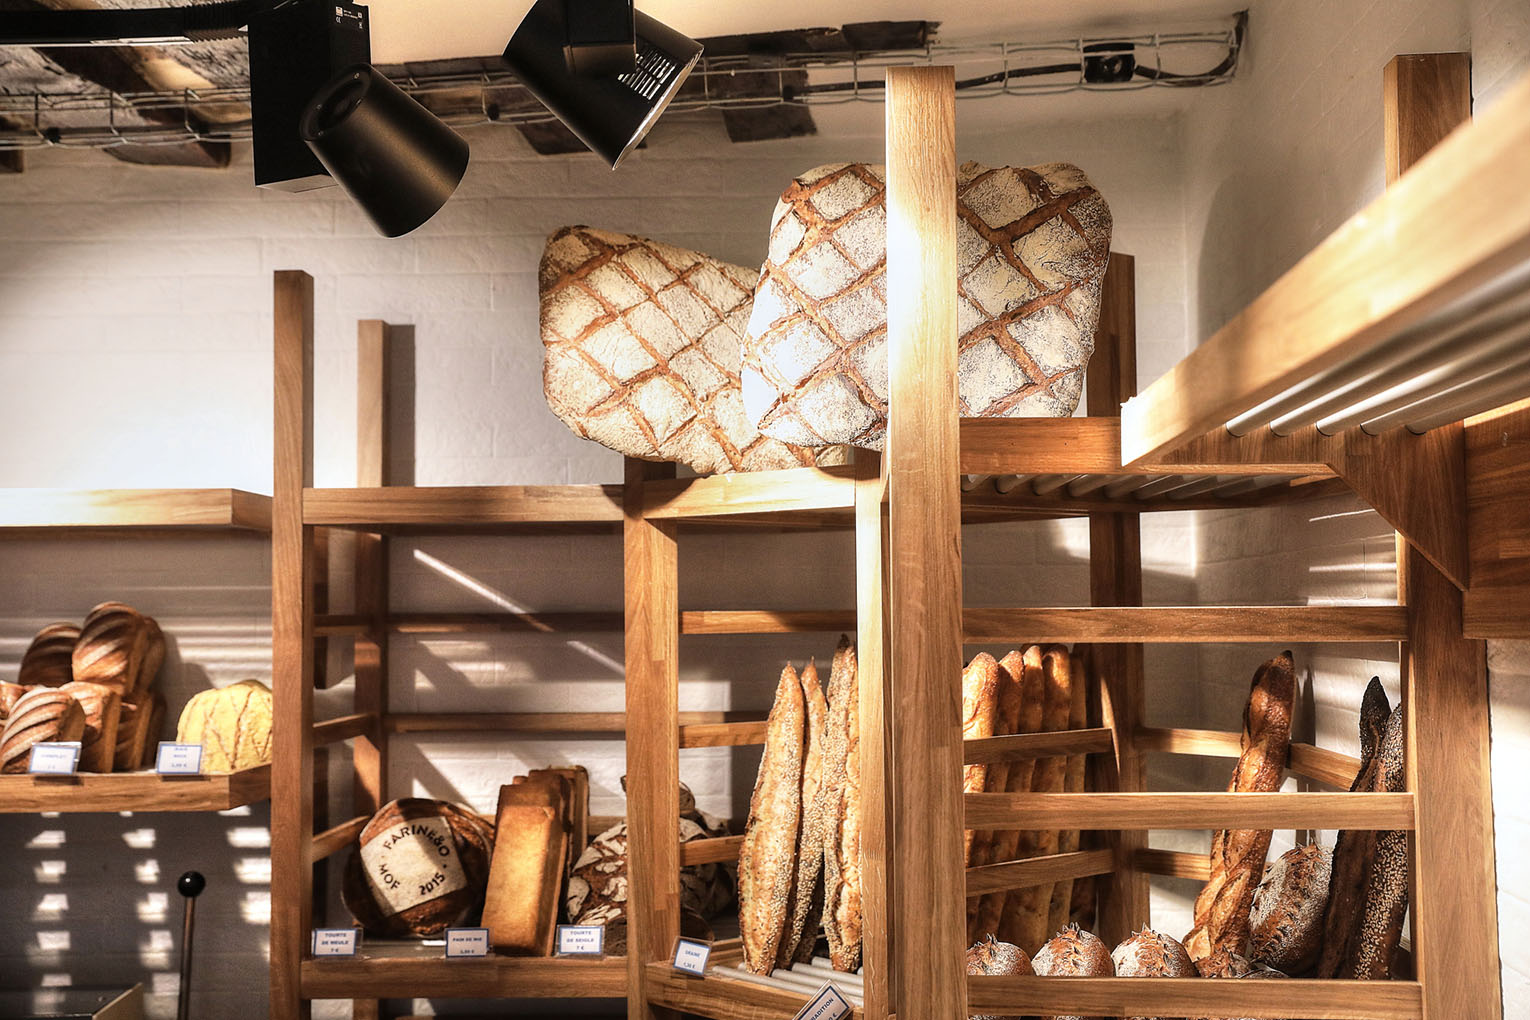 boulangerie_farineo13